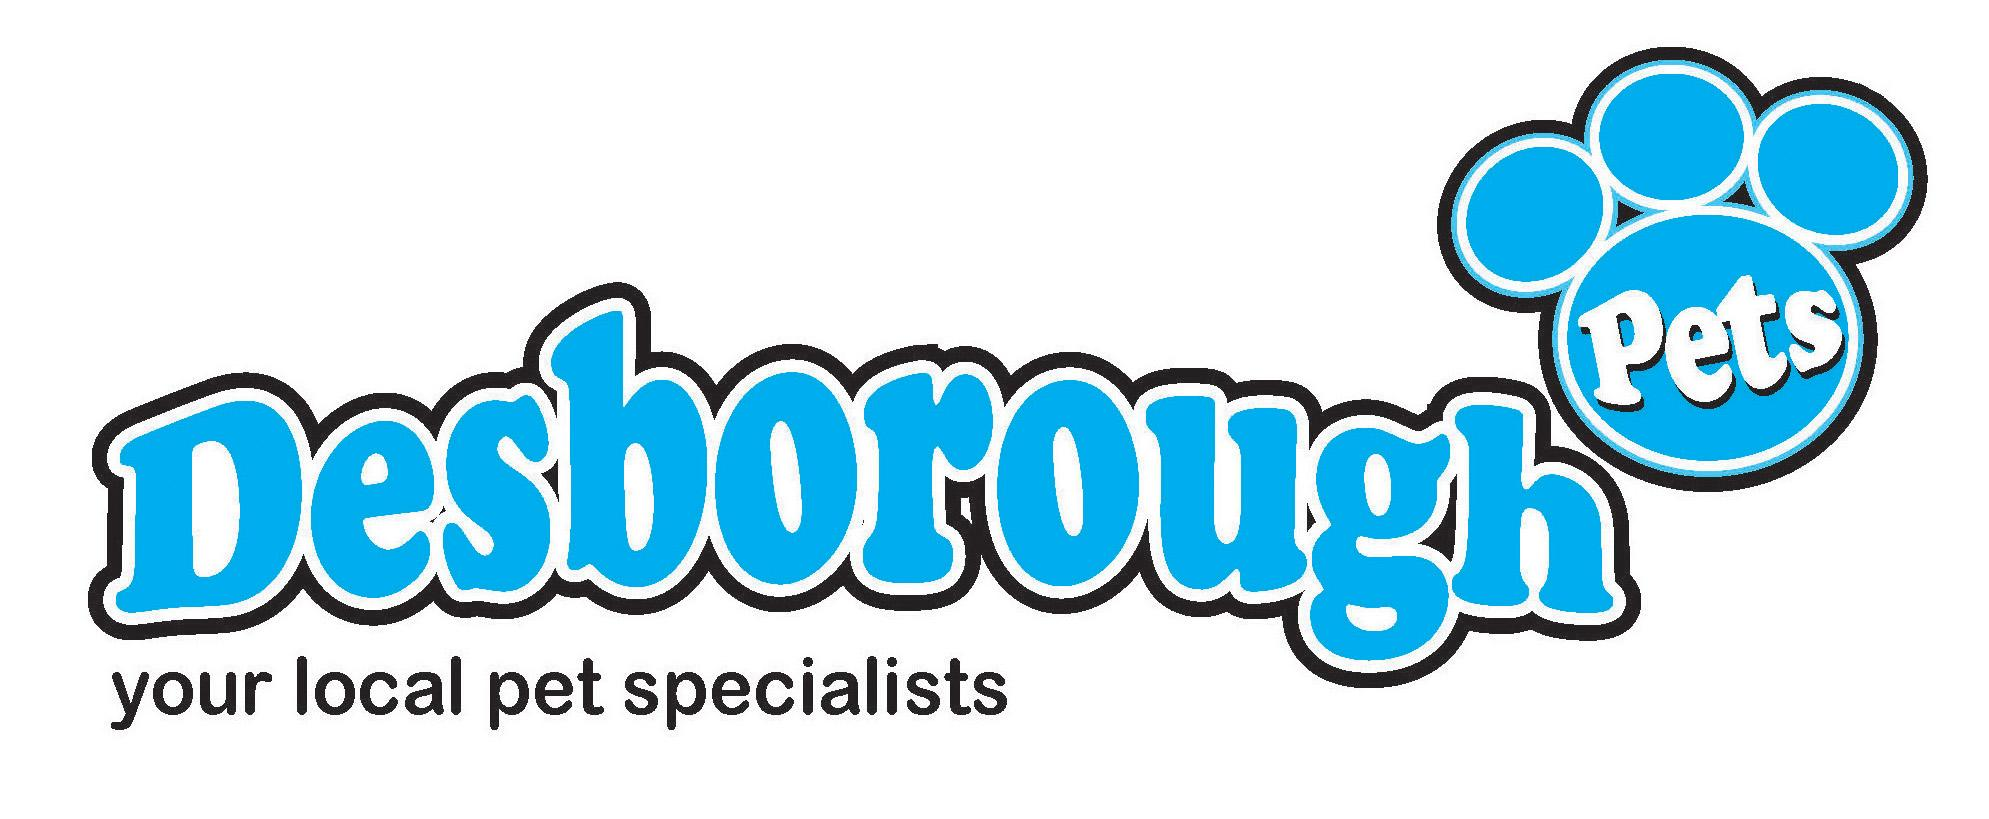 Accessories - Desborough Pets